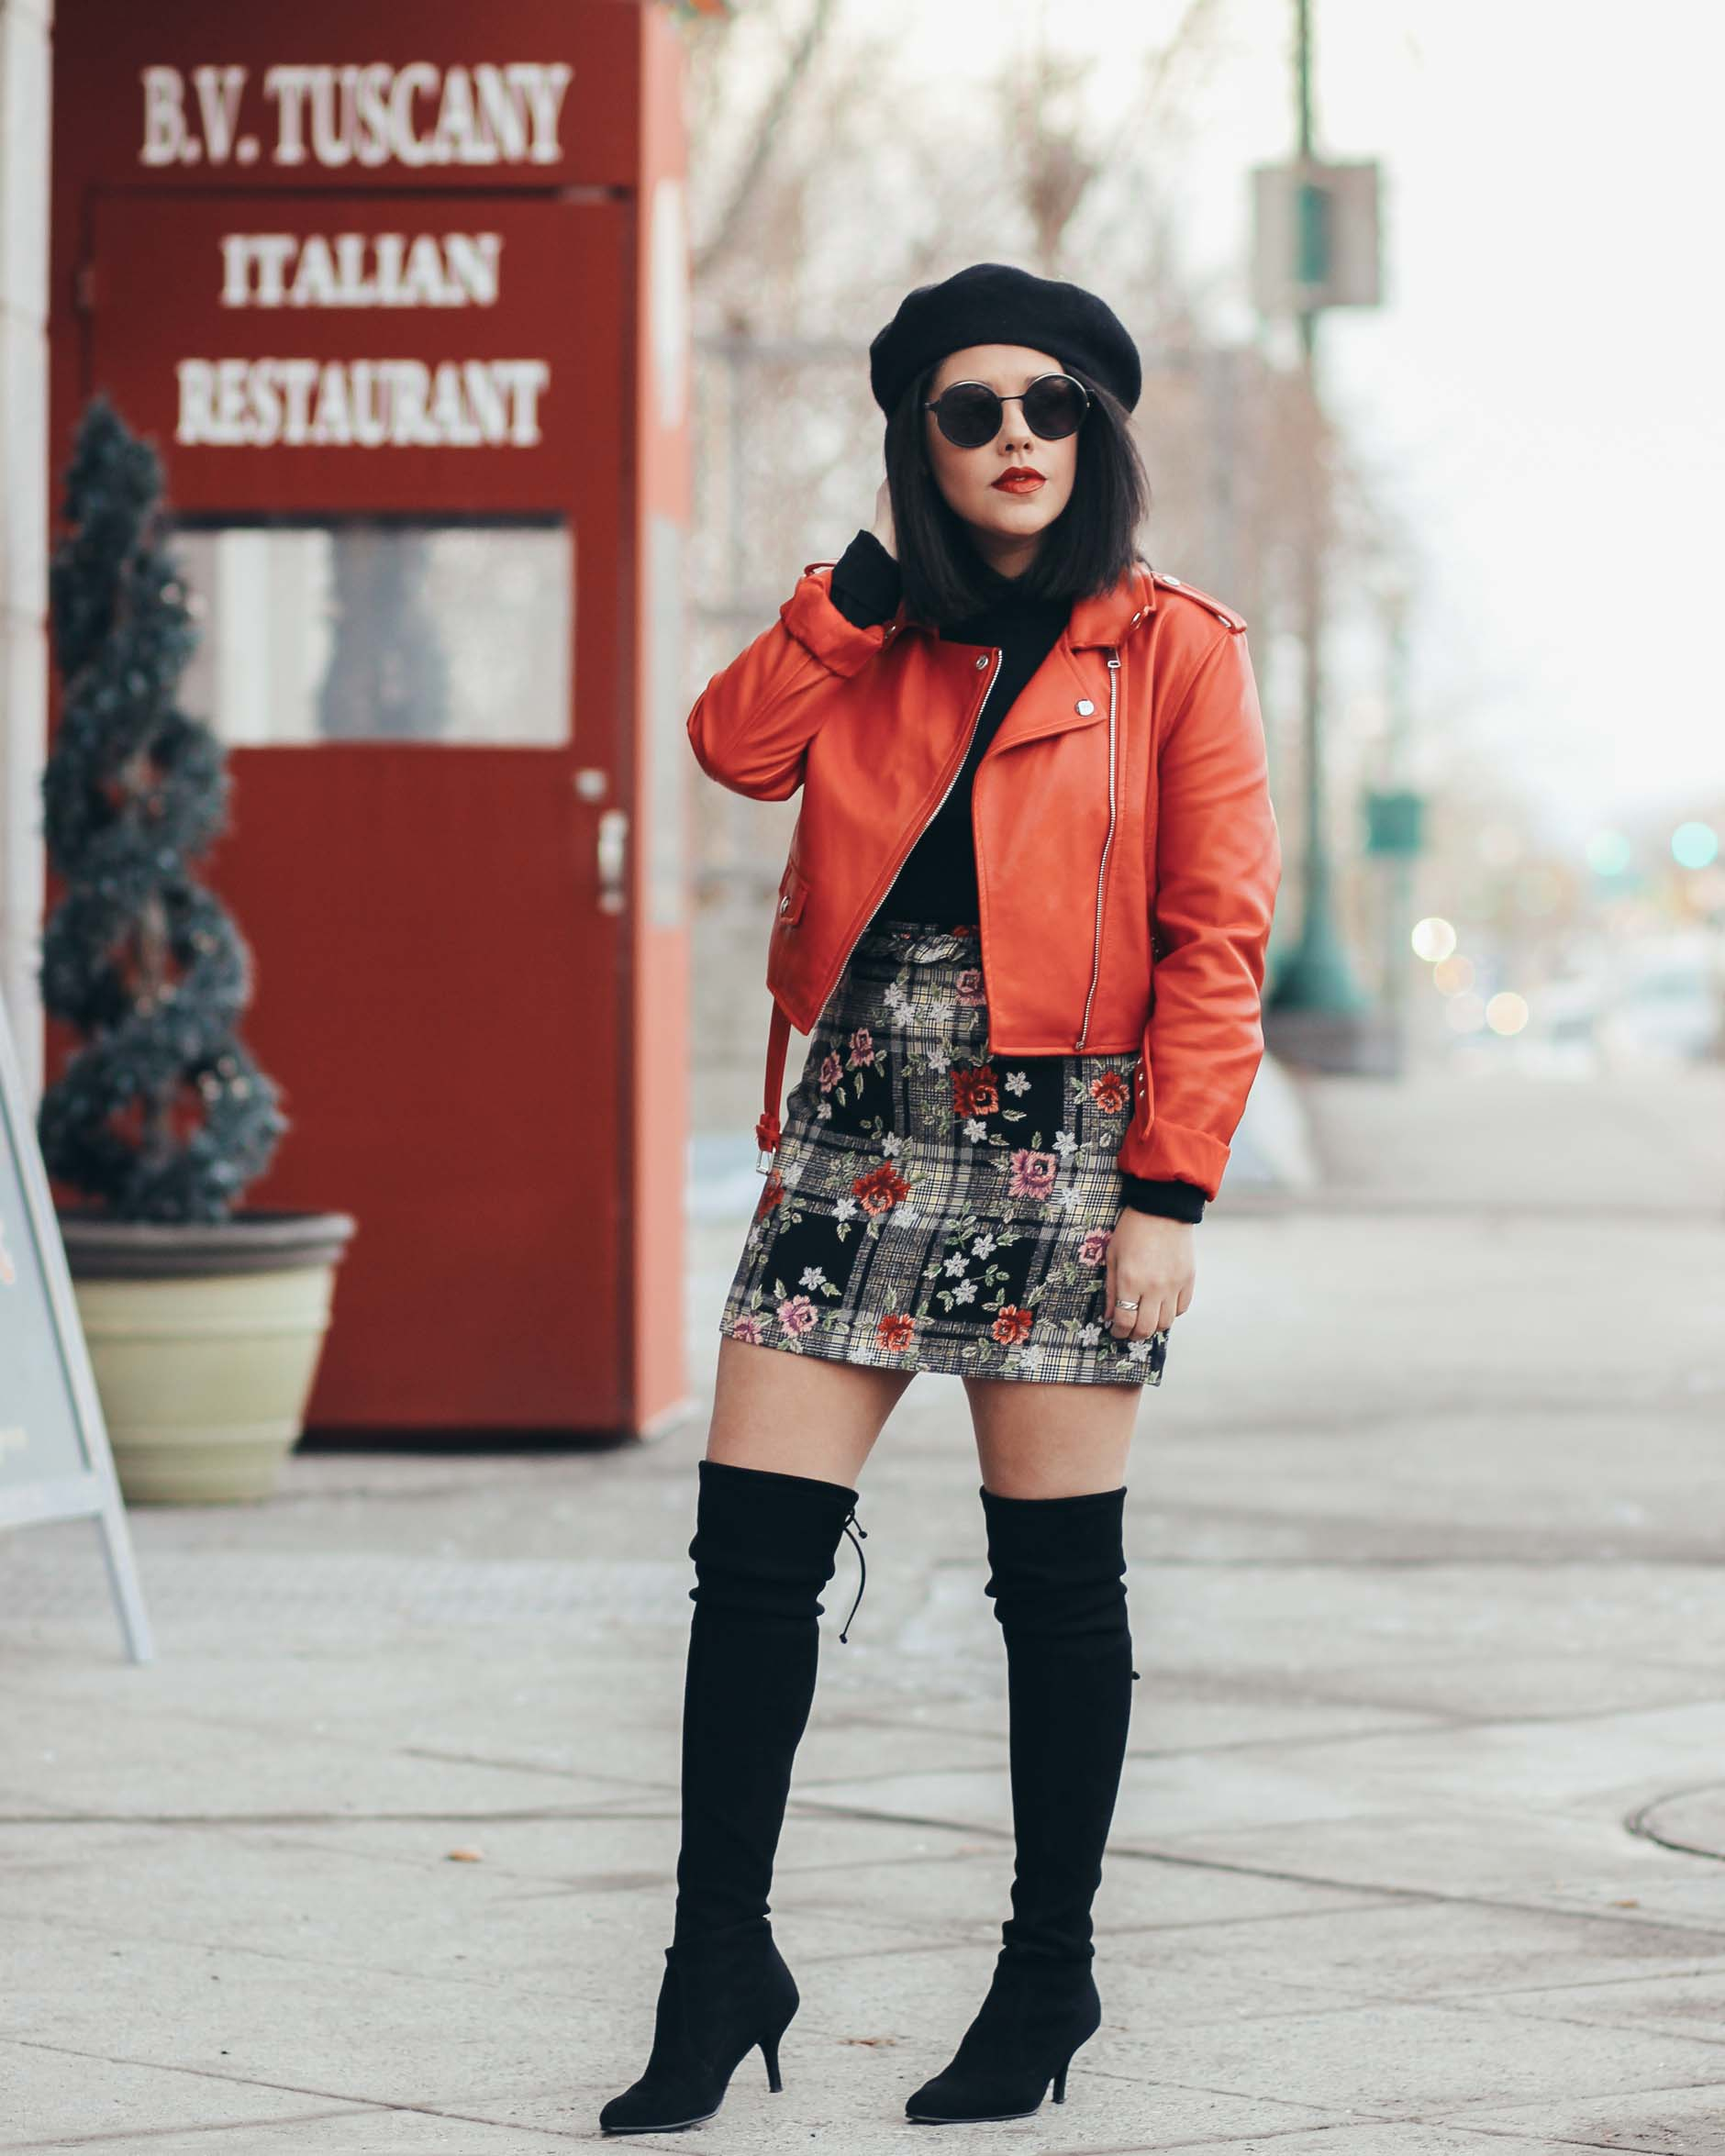 nay michele wearing otk boots with red moto jacket and floral skirt